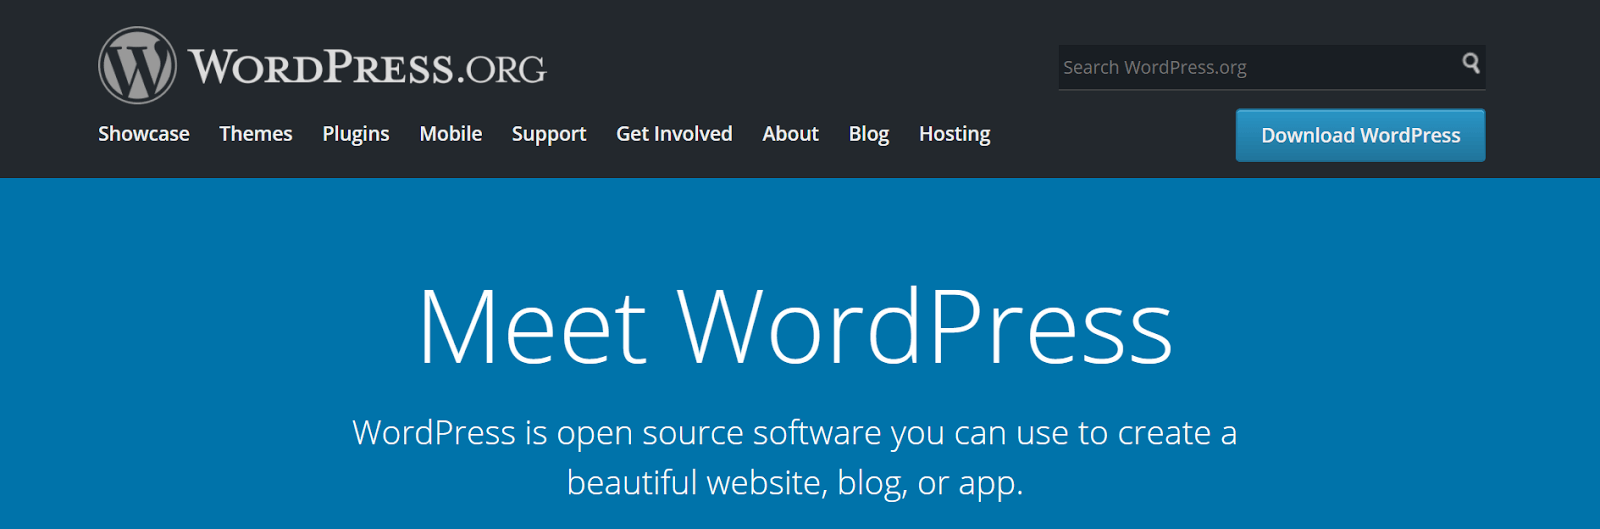 wordpress-homepage.PNG